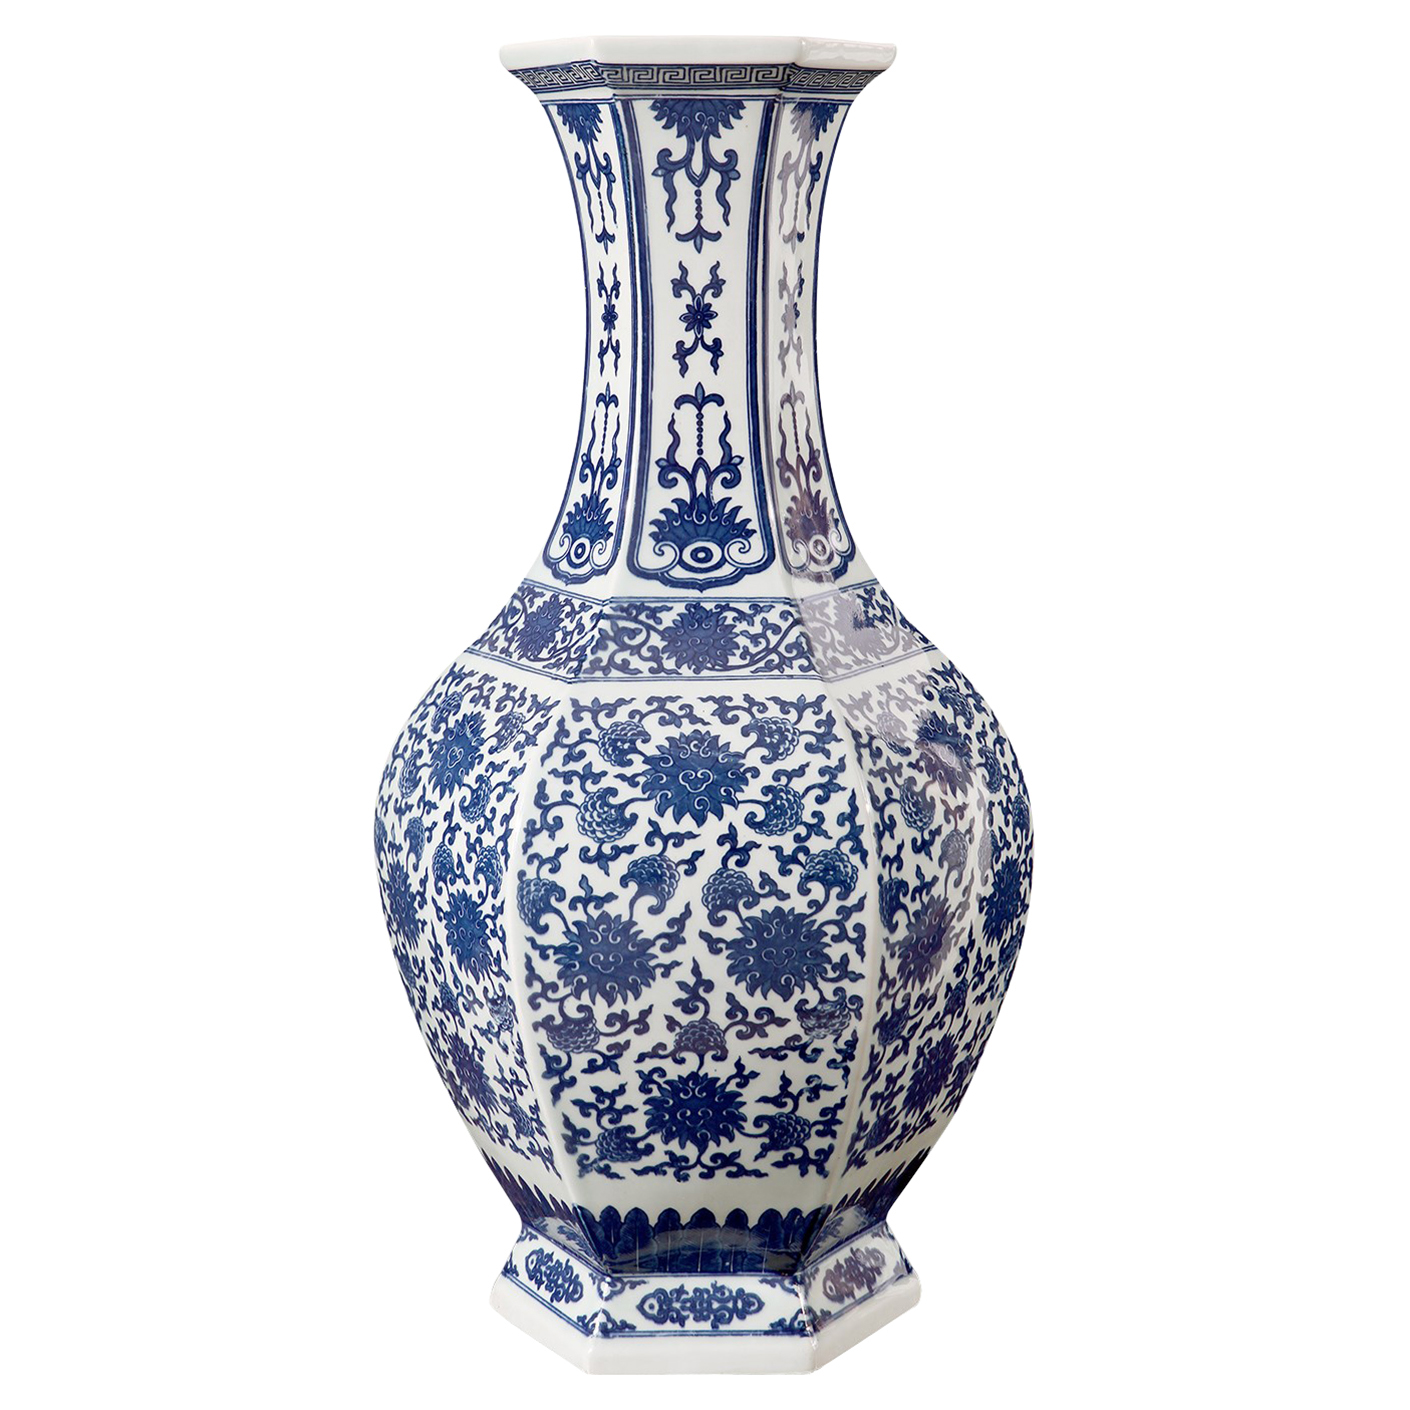 Su Global Blue Floral Tile Pattern Hexagon Base Porcelain Vase